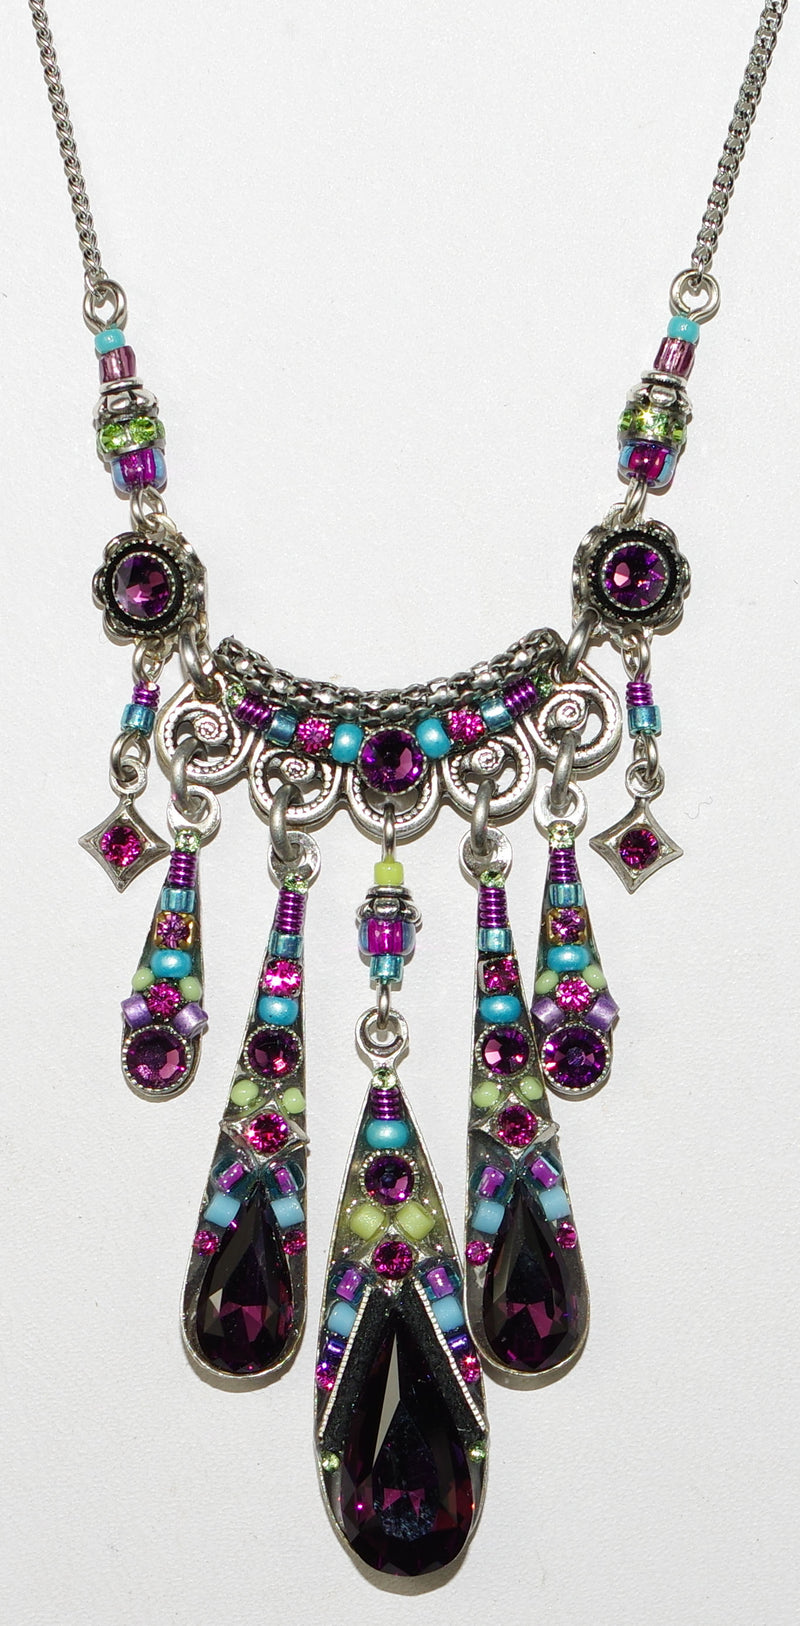 "FIREFLY NECKLACE CAMELLIA AMETHYST: multi color stones, center pendant = 1"", in silver 17"" adjustable chain"